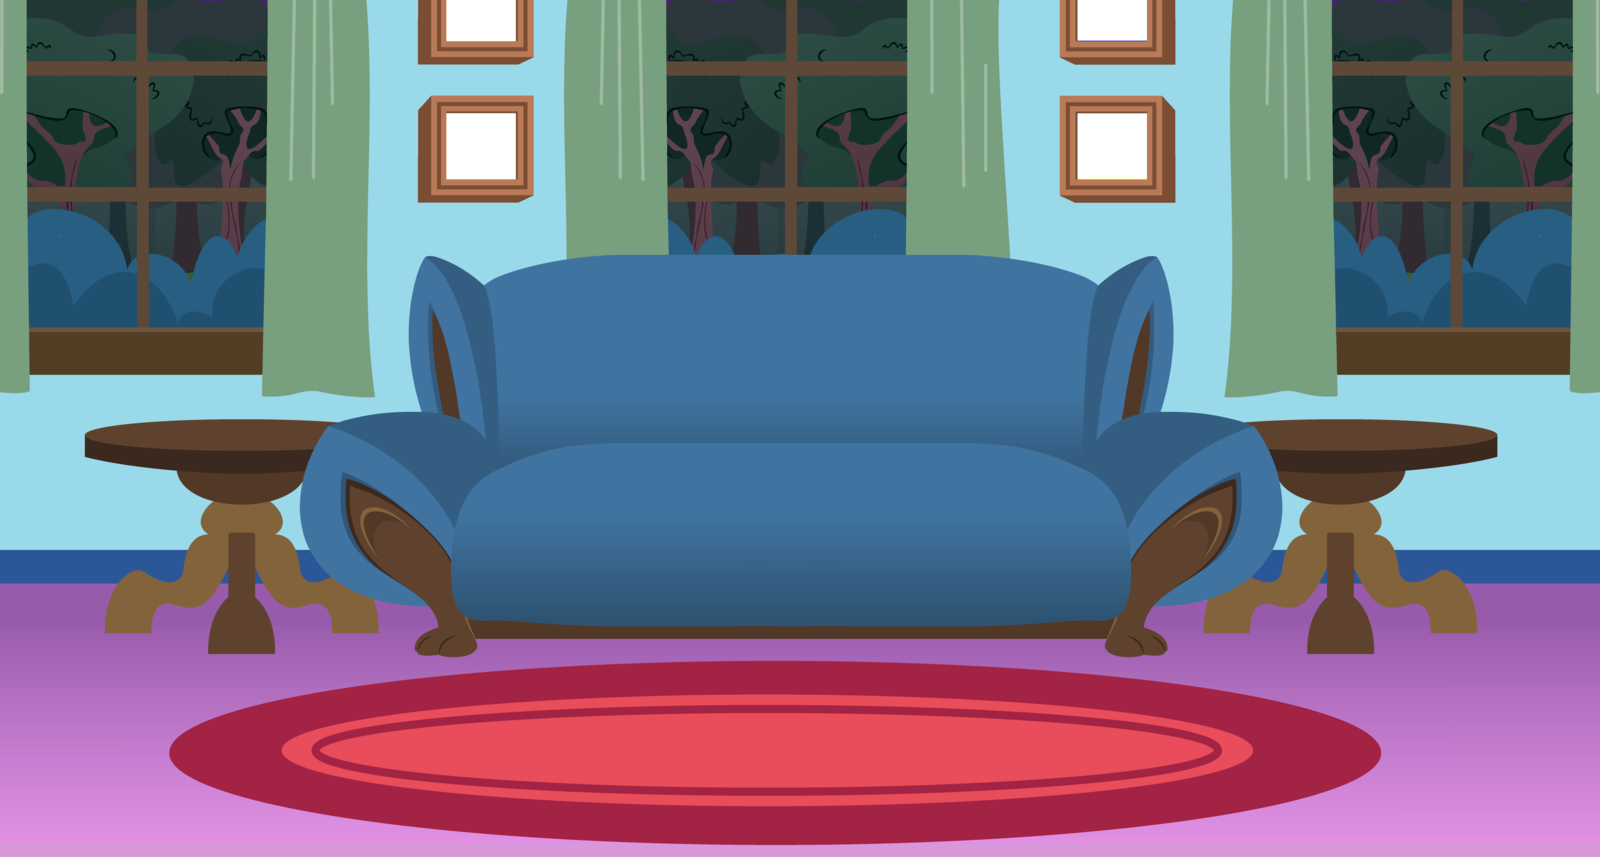 Free Living Room Cliparts, Download Free Clip Art, Free Clip Art on.